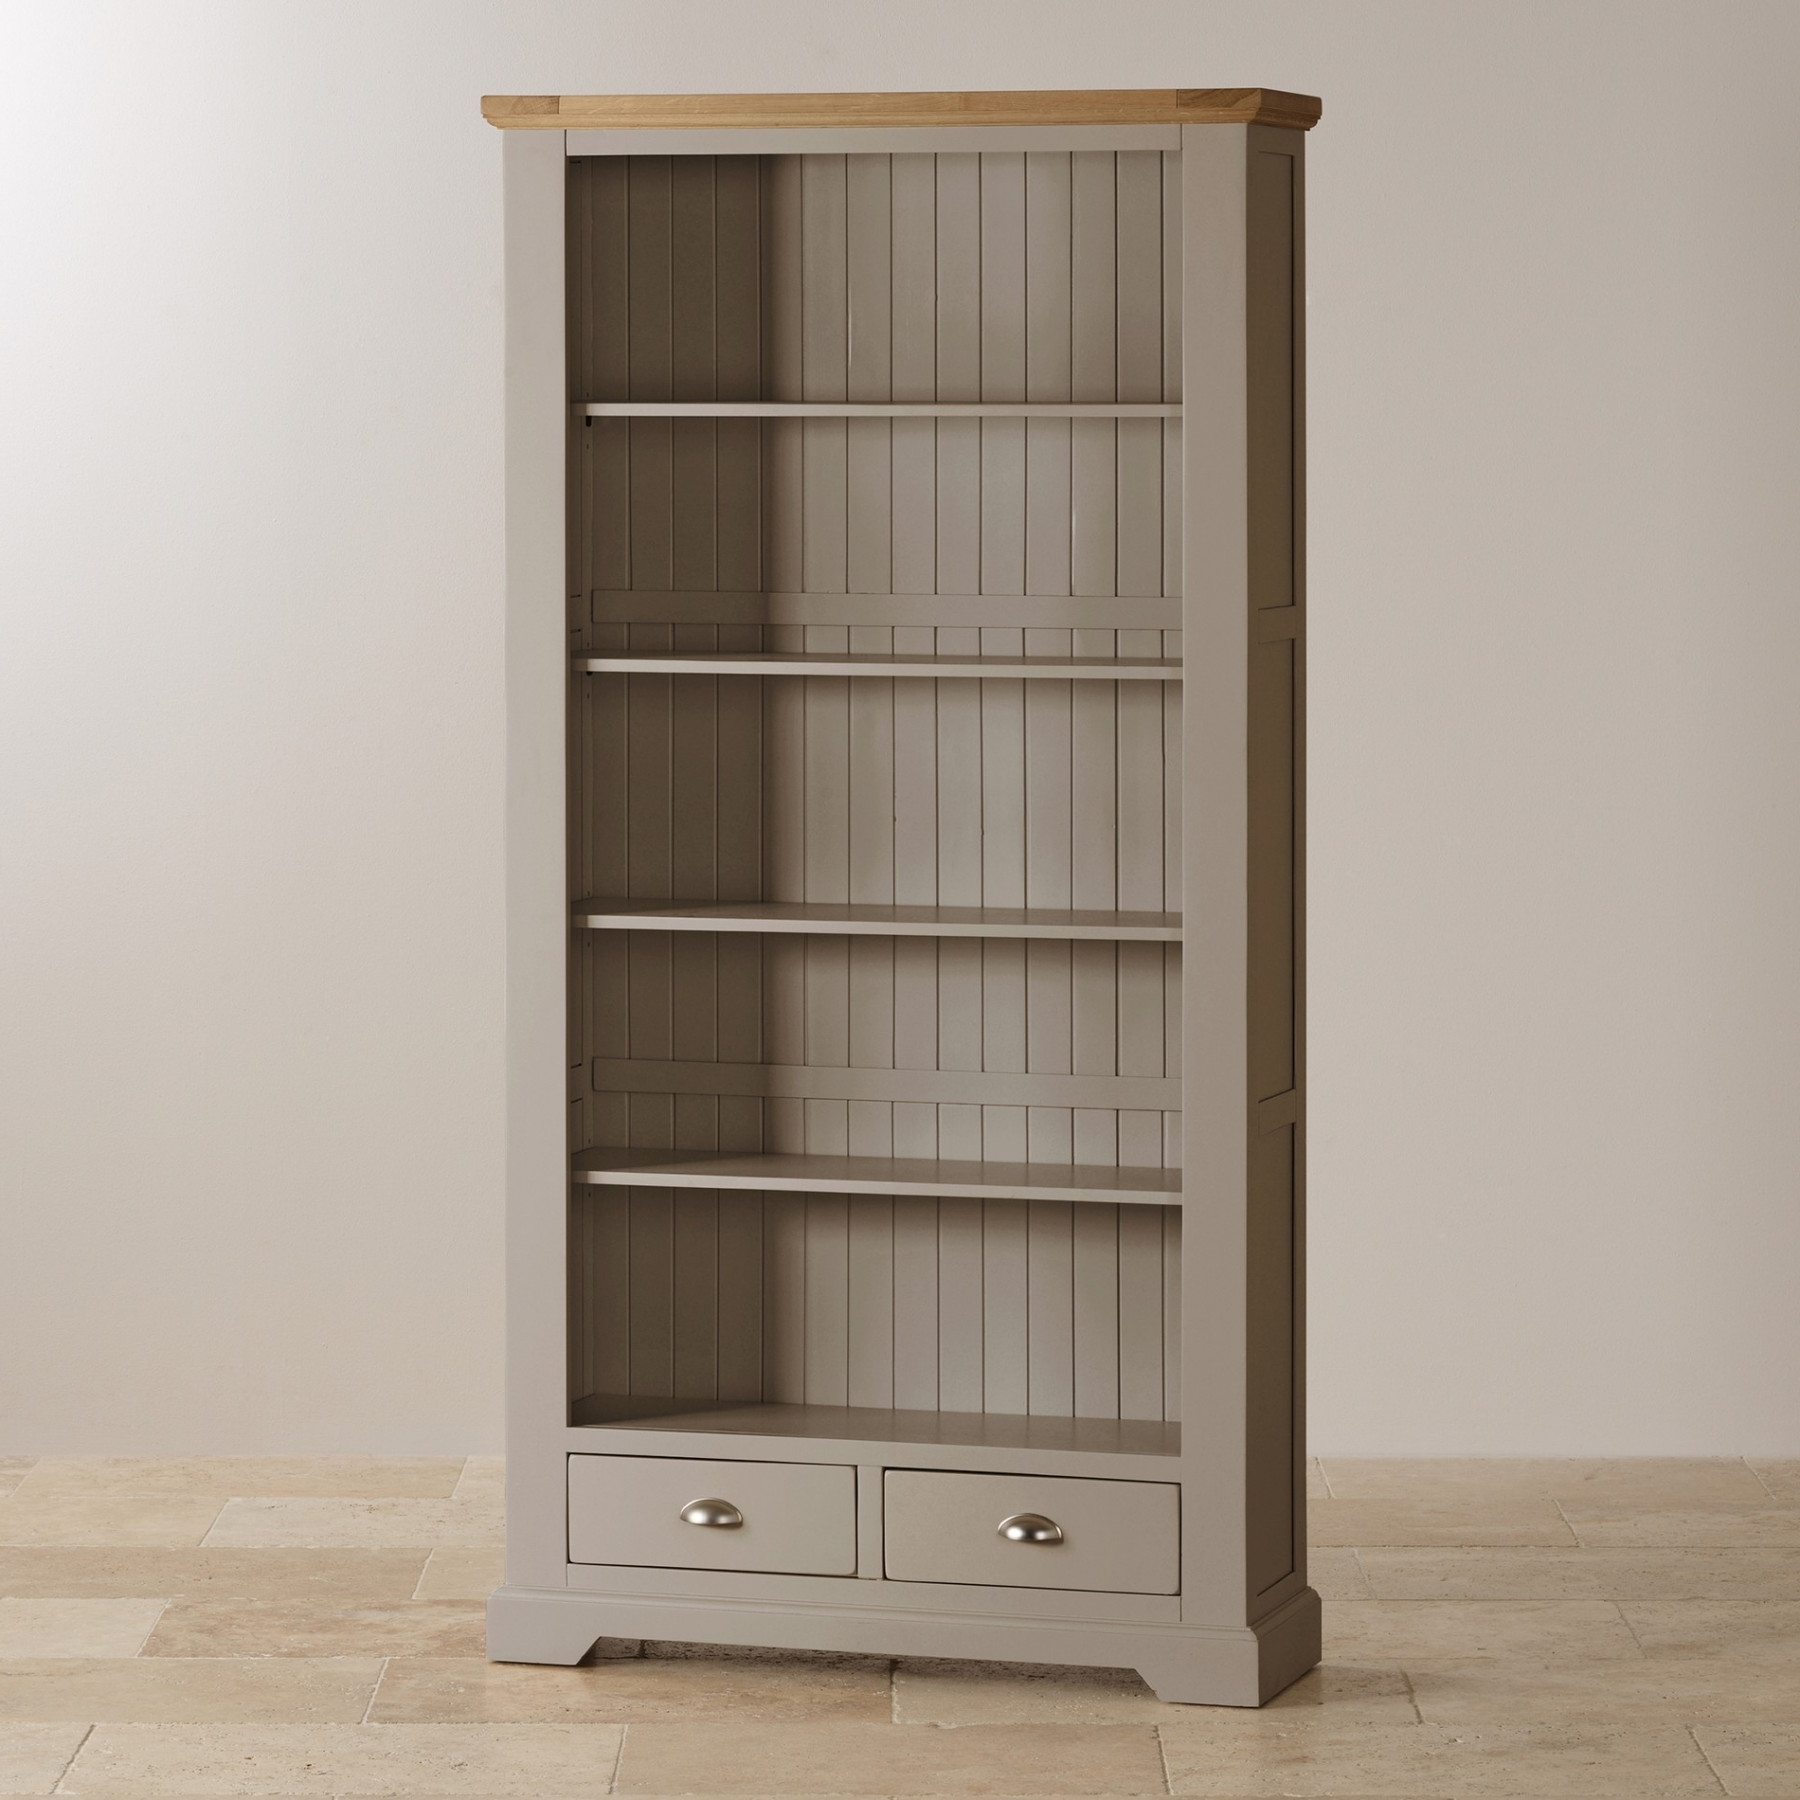 St Ives Natural Oak And Light Gray Painted Tall Bookcase Oak Within Most Popular Painted Oak Bookcases (View 14 of 15)